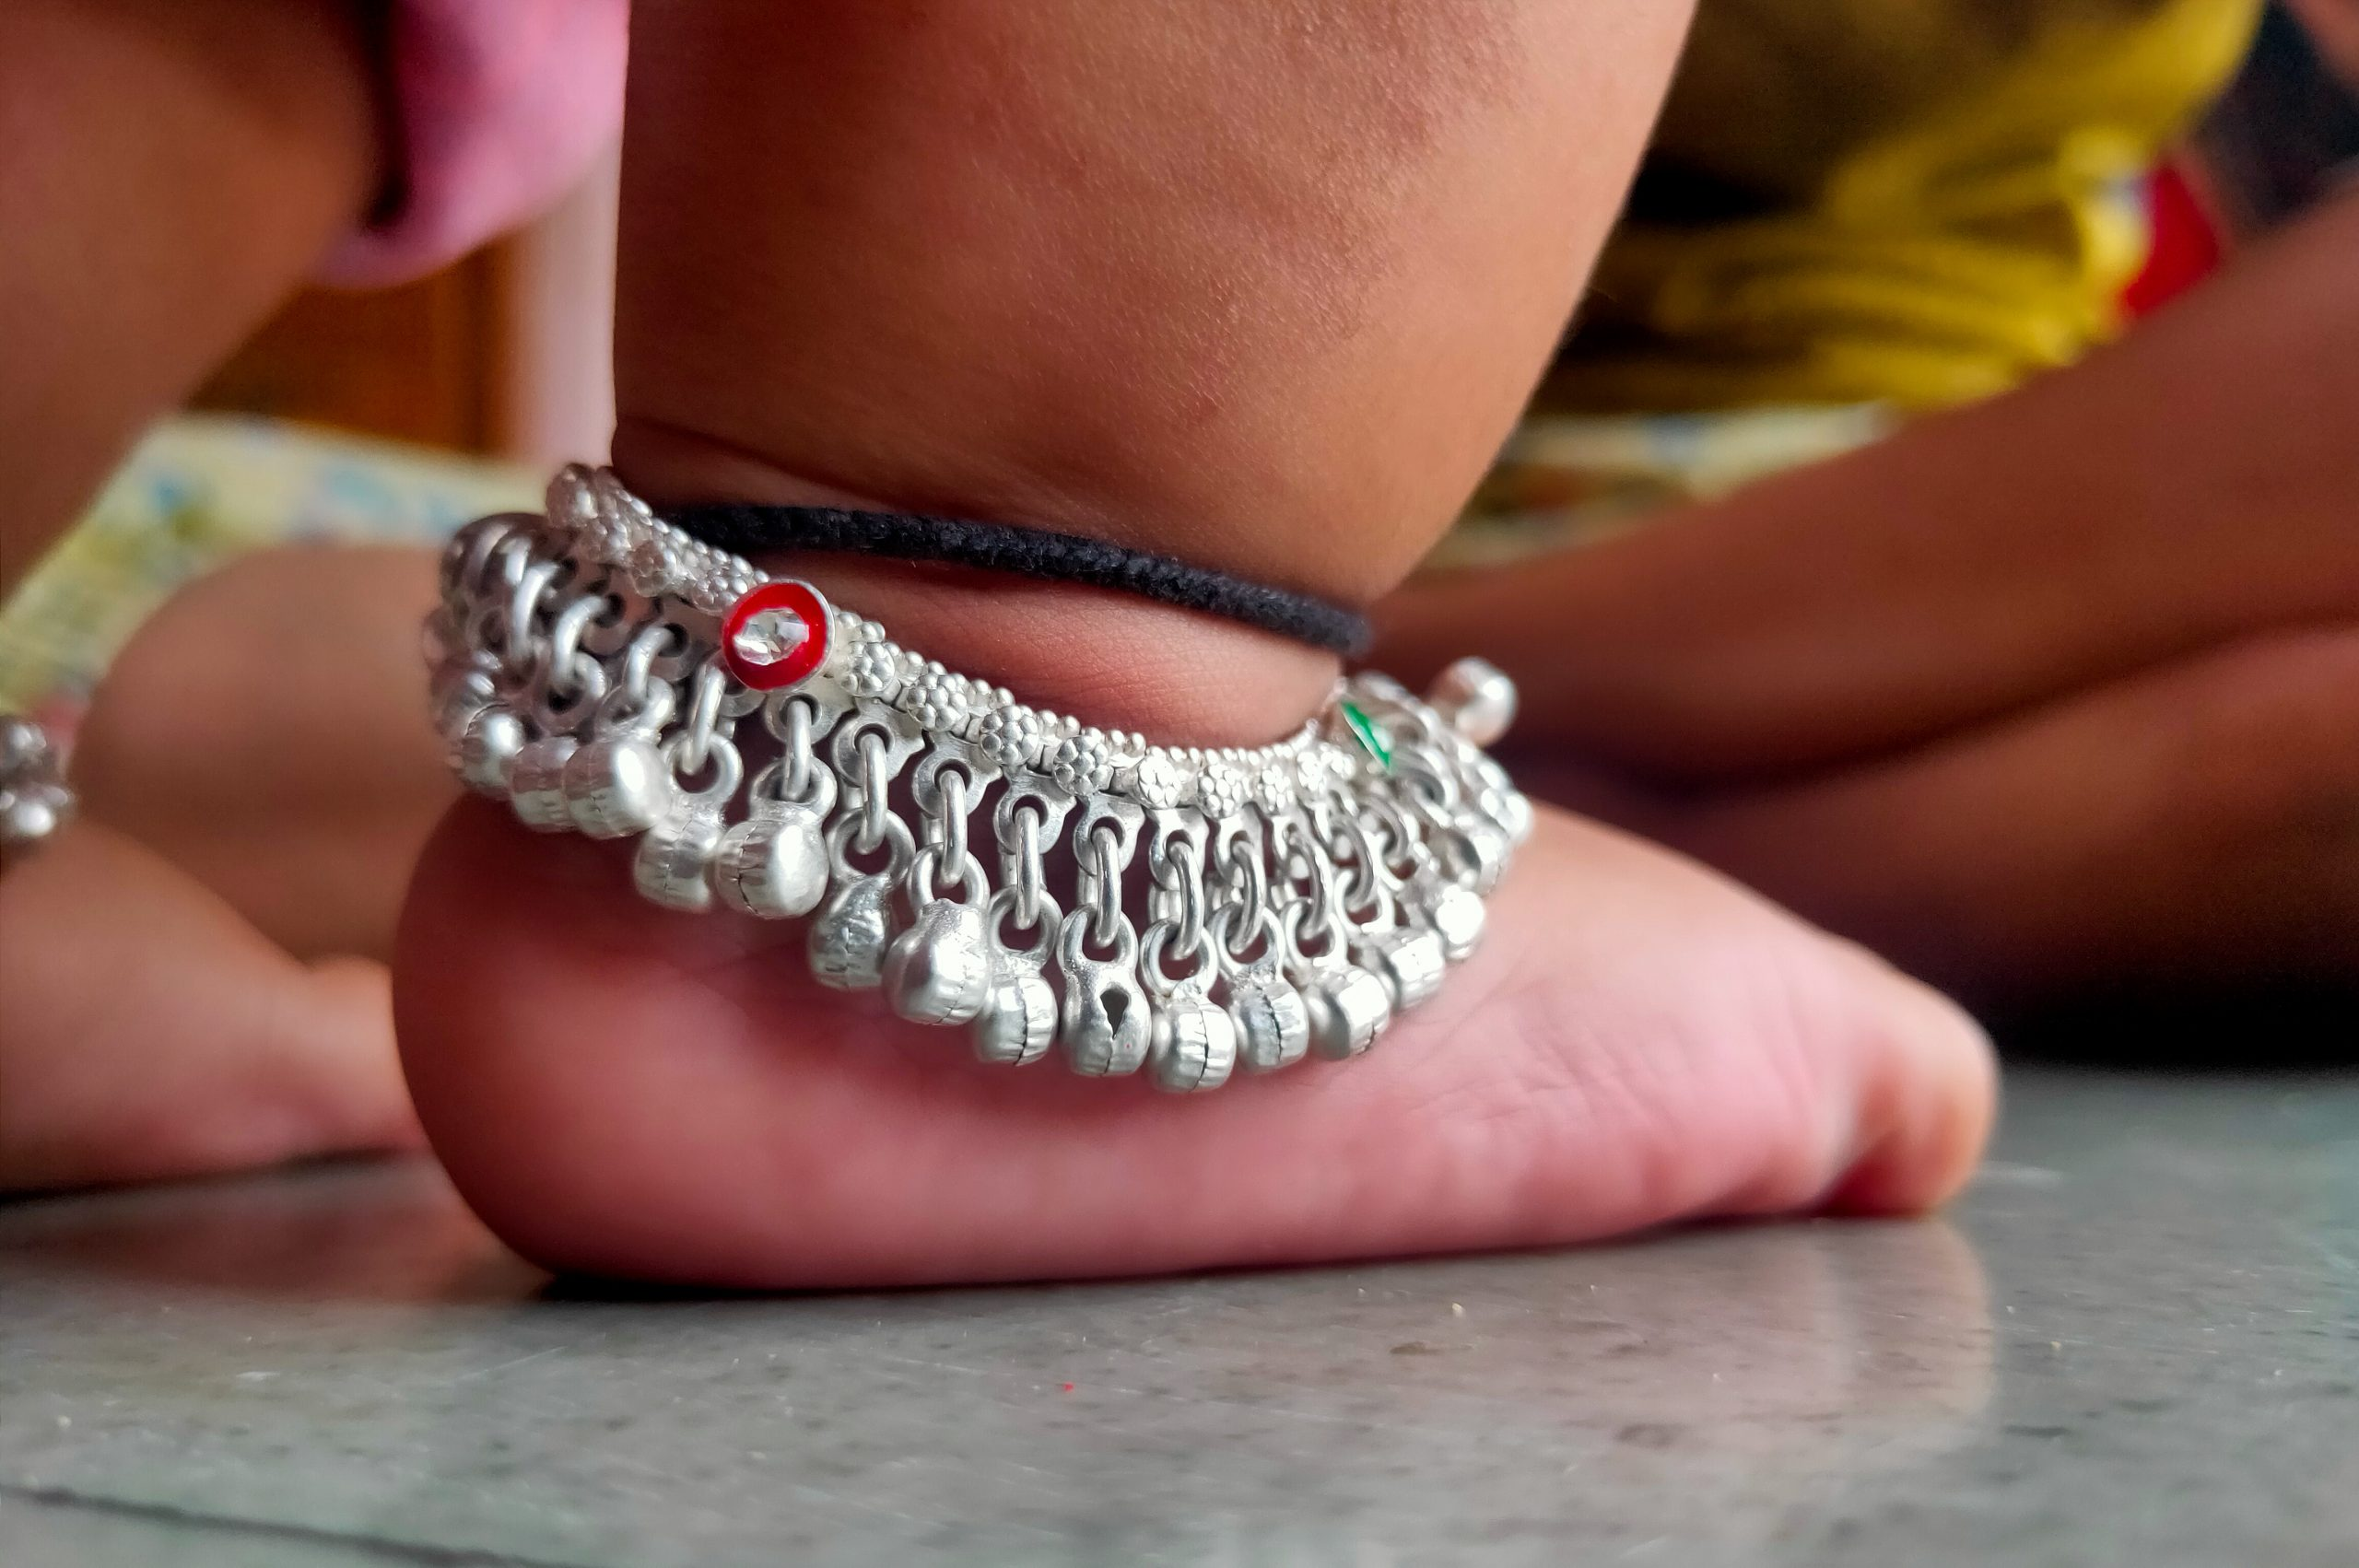 Baby wearing anklets